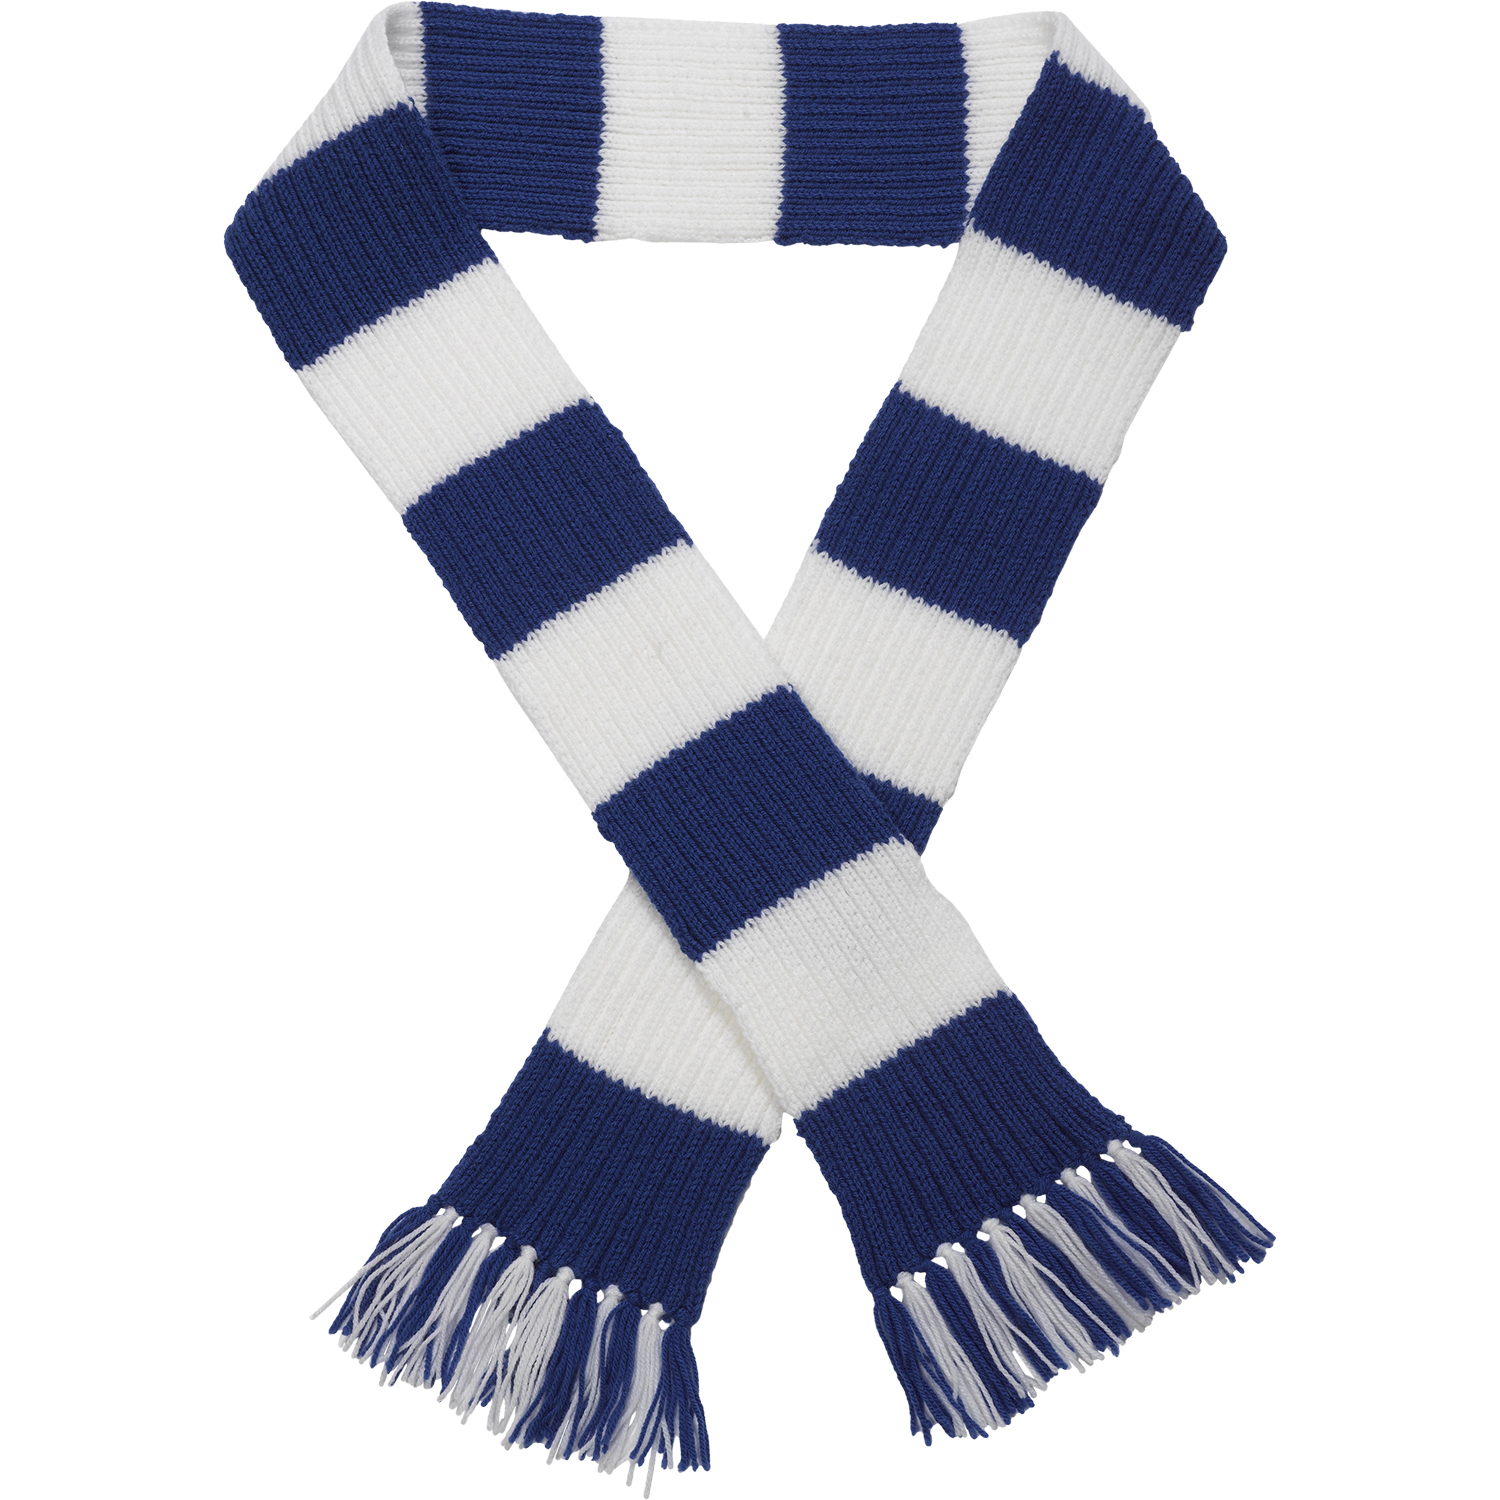 Knitting Pattern And Wool Kits : Craft Hobby Knitted Scarf Kit Premier League Football DK Knitting Pattern &am...